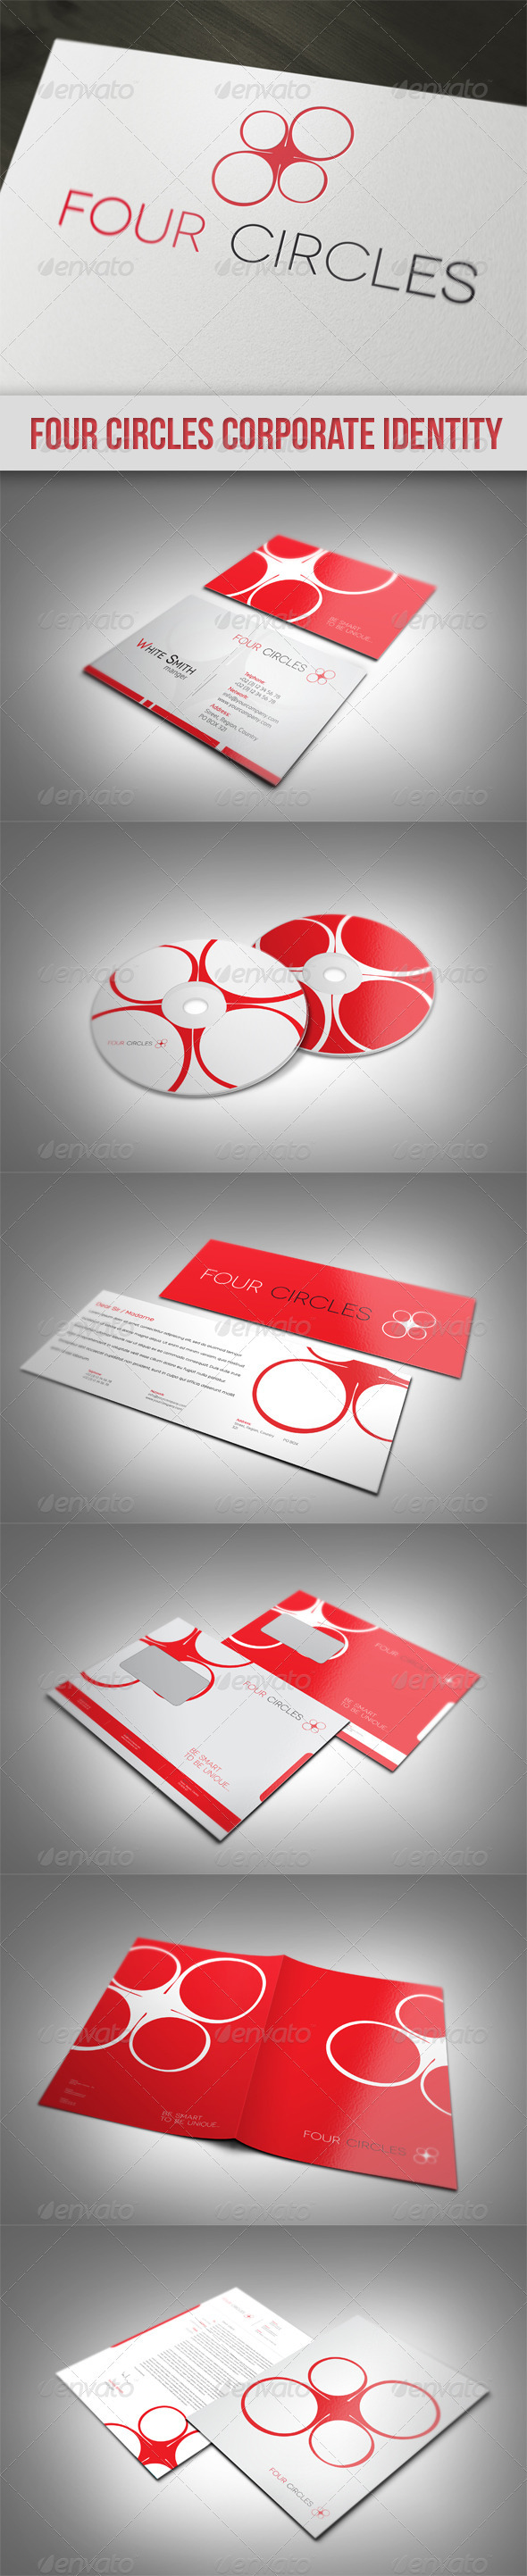 GraphicRiver Four Circles Corporate Identity 1564478